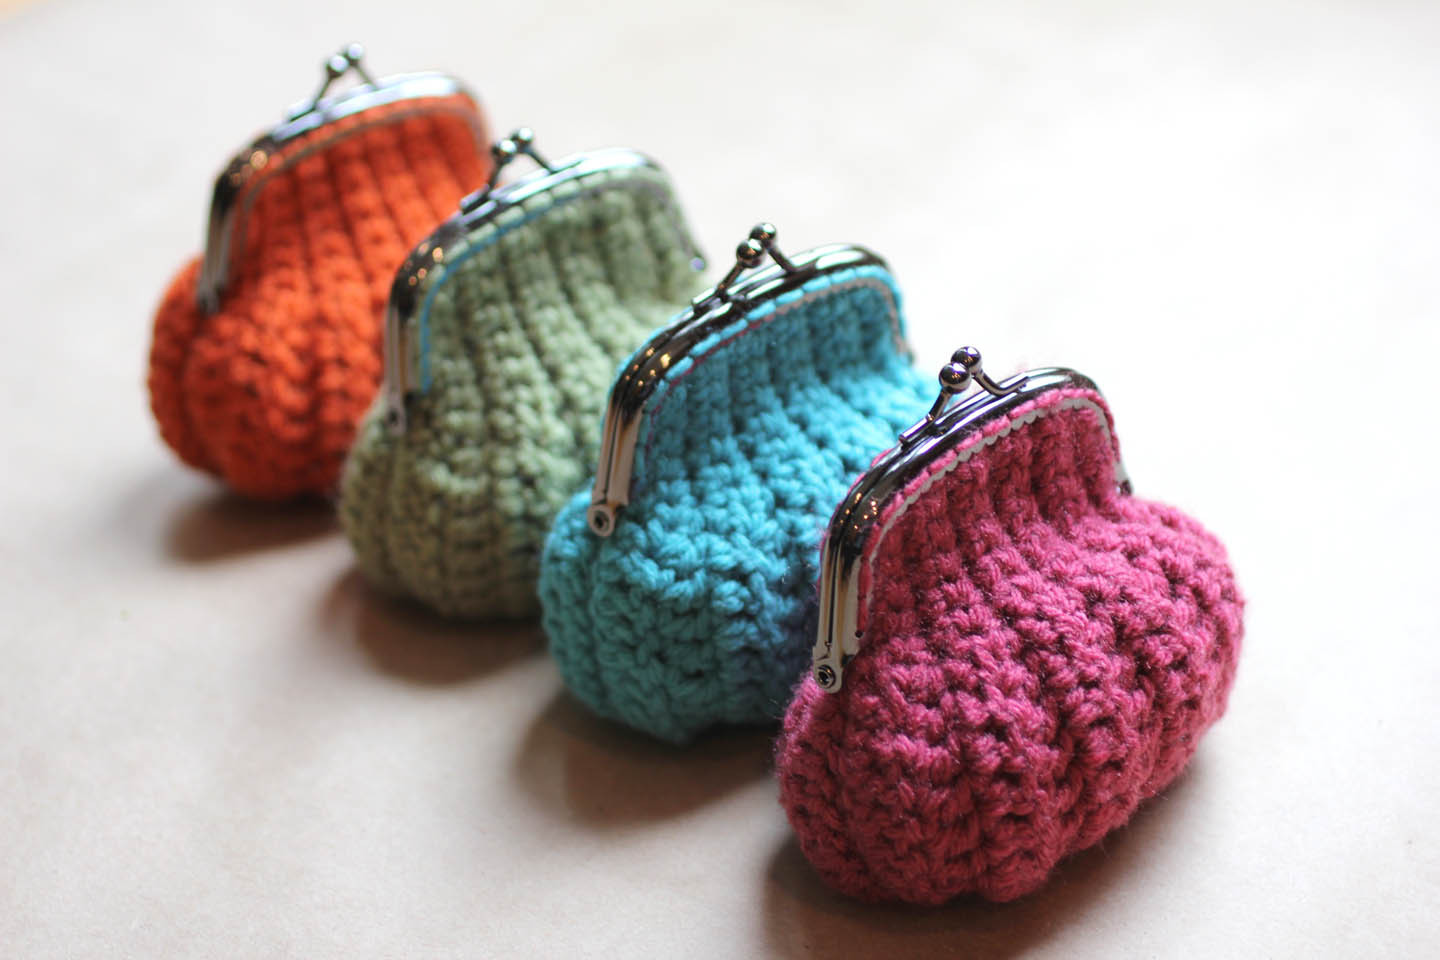 Crochet Purse Patterns New Crochet Coin Purse Repeat Crafter Me Of Attractive 46 Photos Crochet Purse Patterns